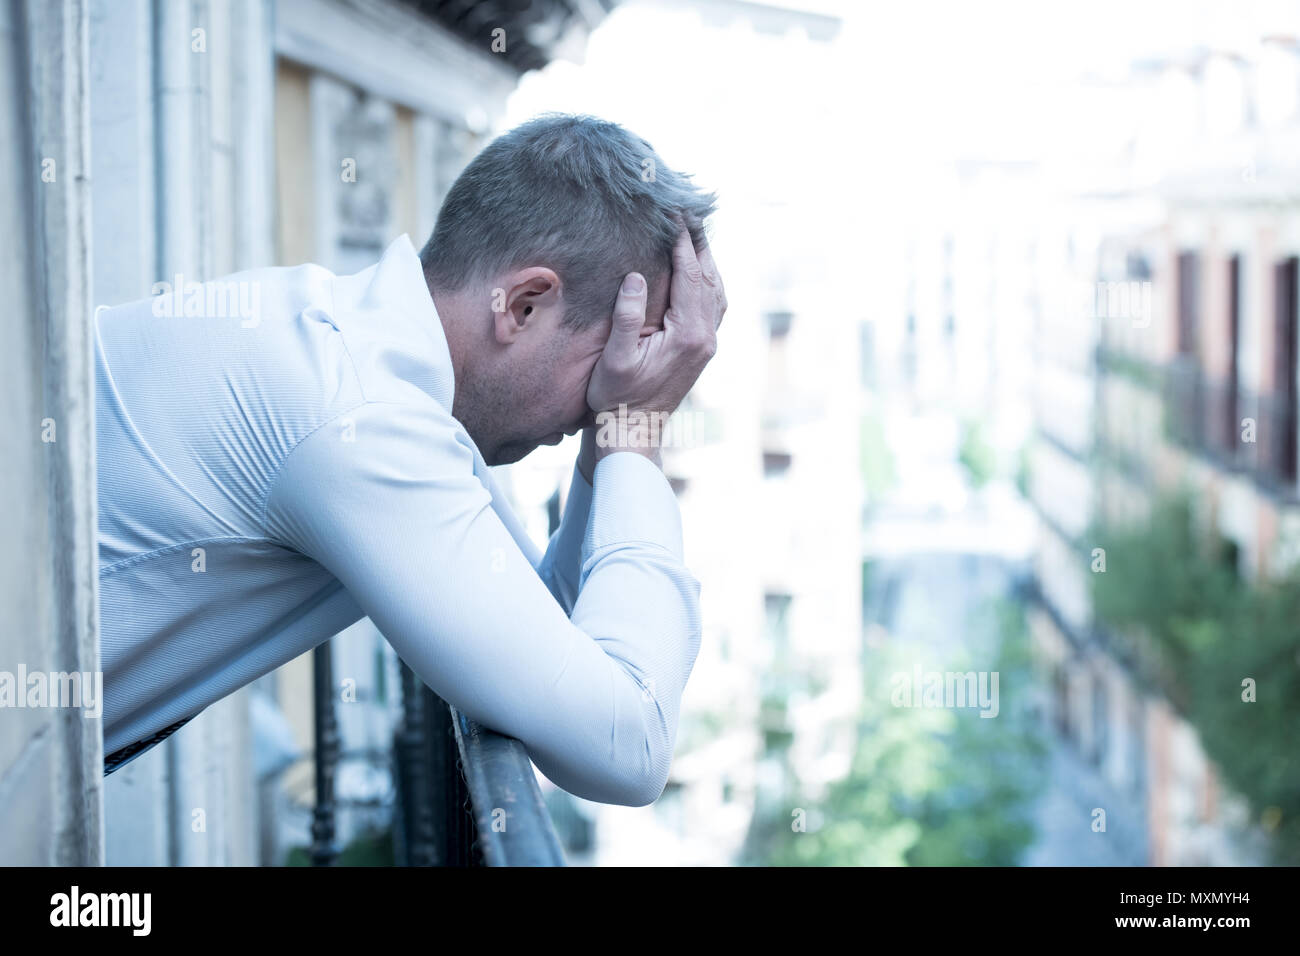 close up portrait of sad and depressed man looking out the window on a balcony at home suffering depression and felling lonely in mental health concep - Stock Image